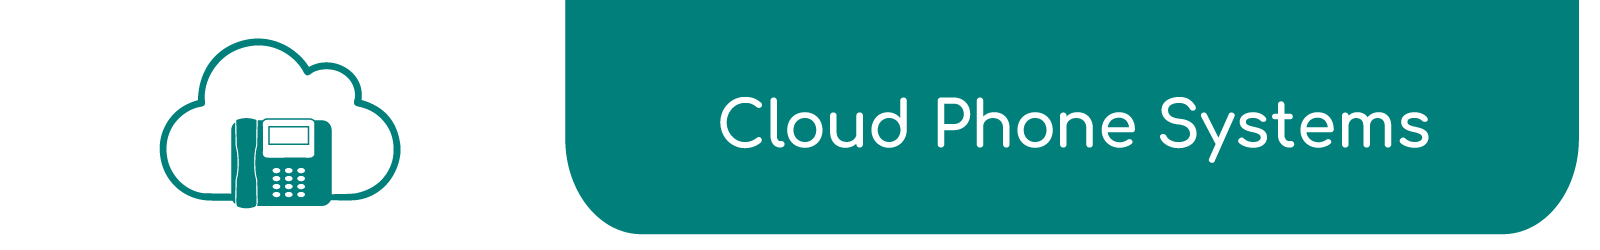 Cloud Business Phone Systems - Electronic Communication Services